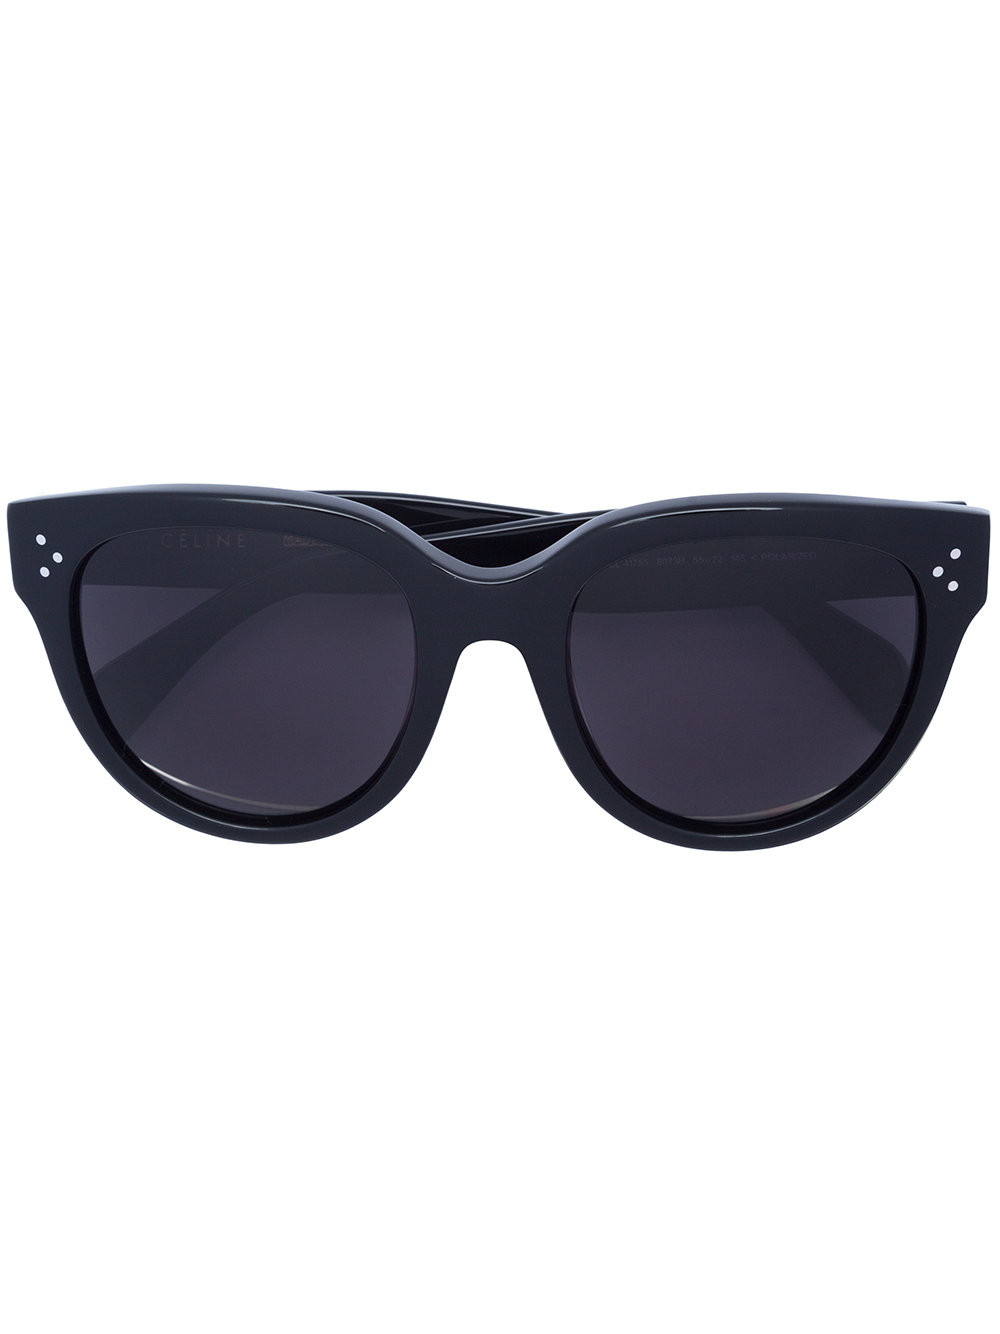 5f294dd93a Replica Celine Sunglasses UK Australia Wholesale Cheap Online Sale